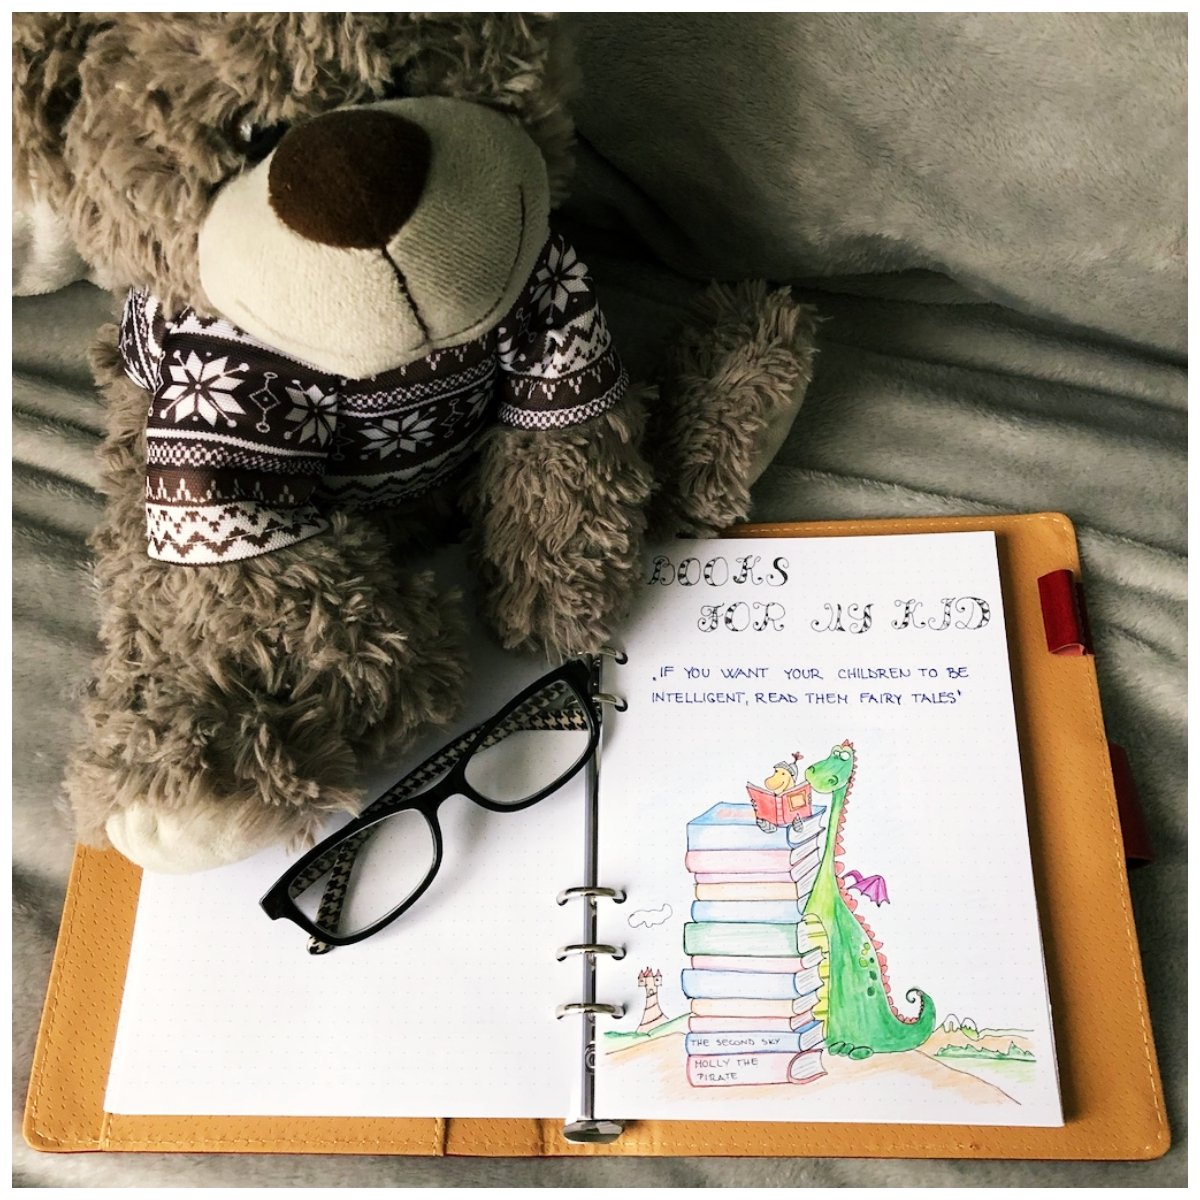 Bullet journal - Books to read with the bear - itstartswithacoffee.com #bulletjournal #booktoread #itstartswithacoffee.com